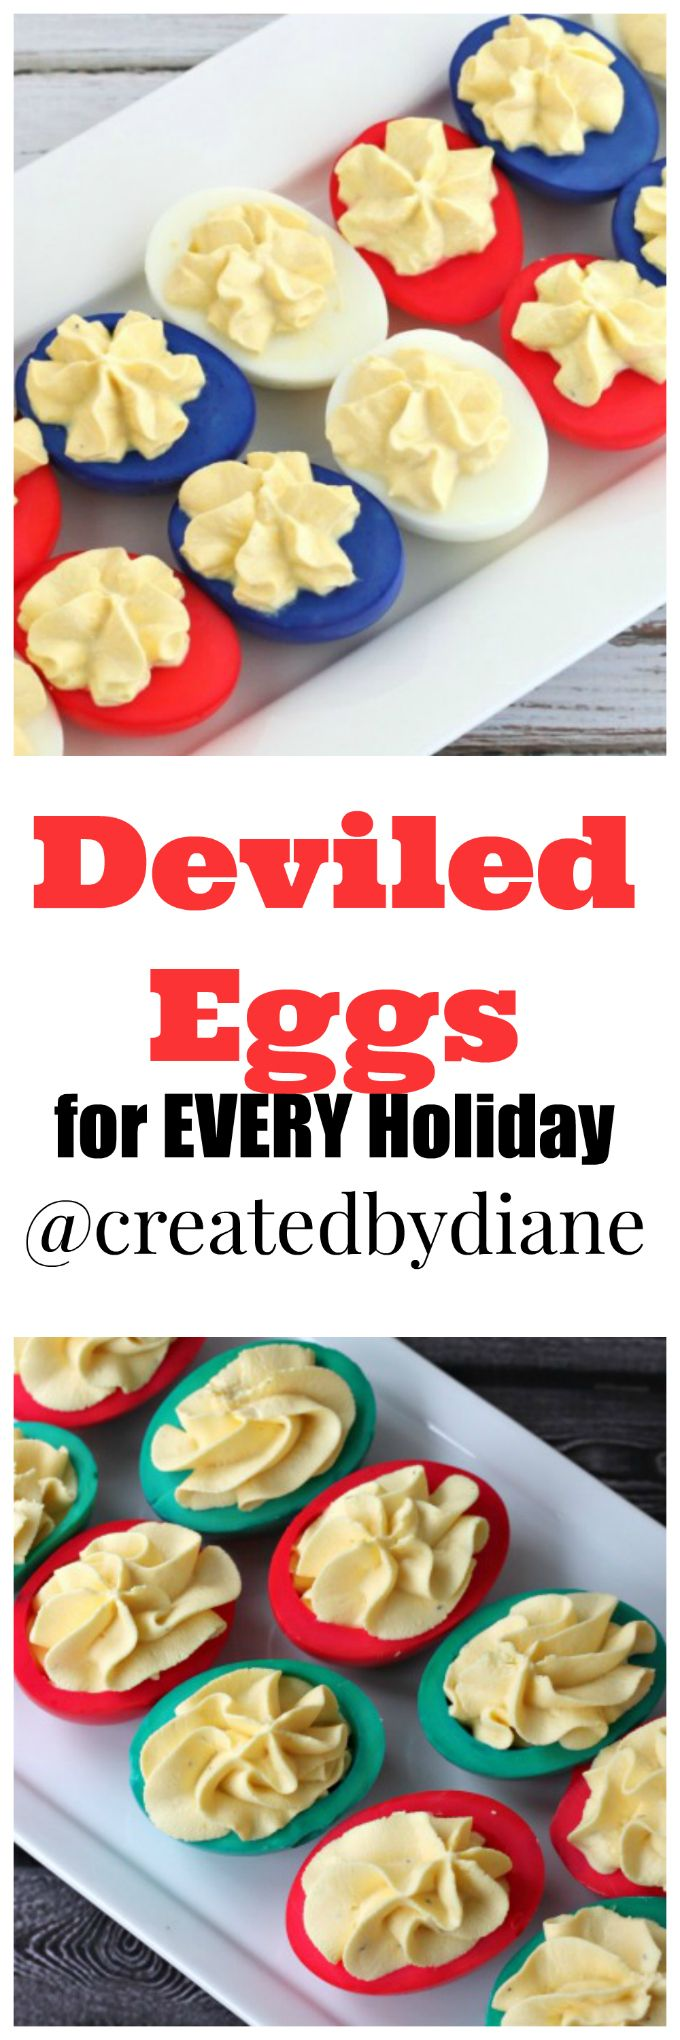 deviled-eggs-for-every-holiday-createdbydiane